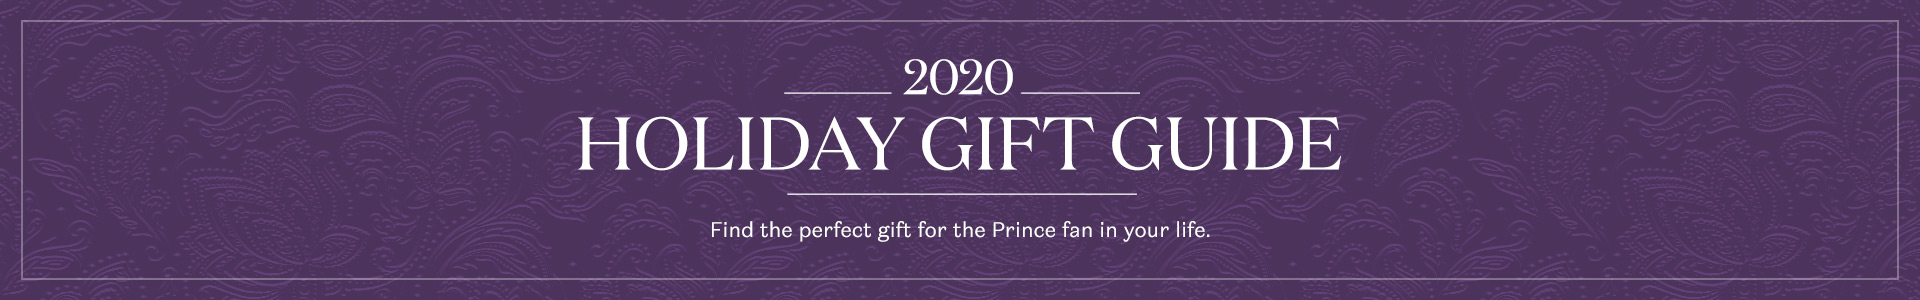 2020 Holiday Gift Guide. Find the perfect gift for the Prince fan in your life.